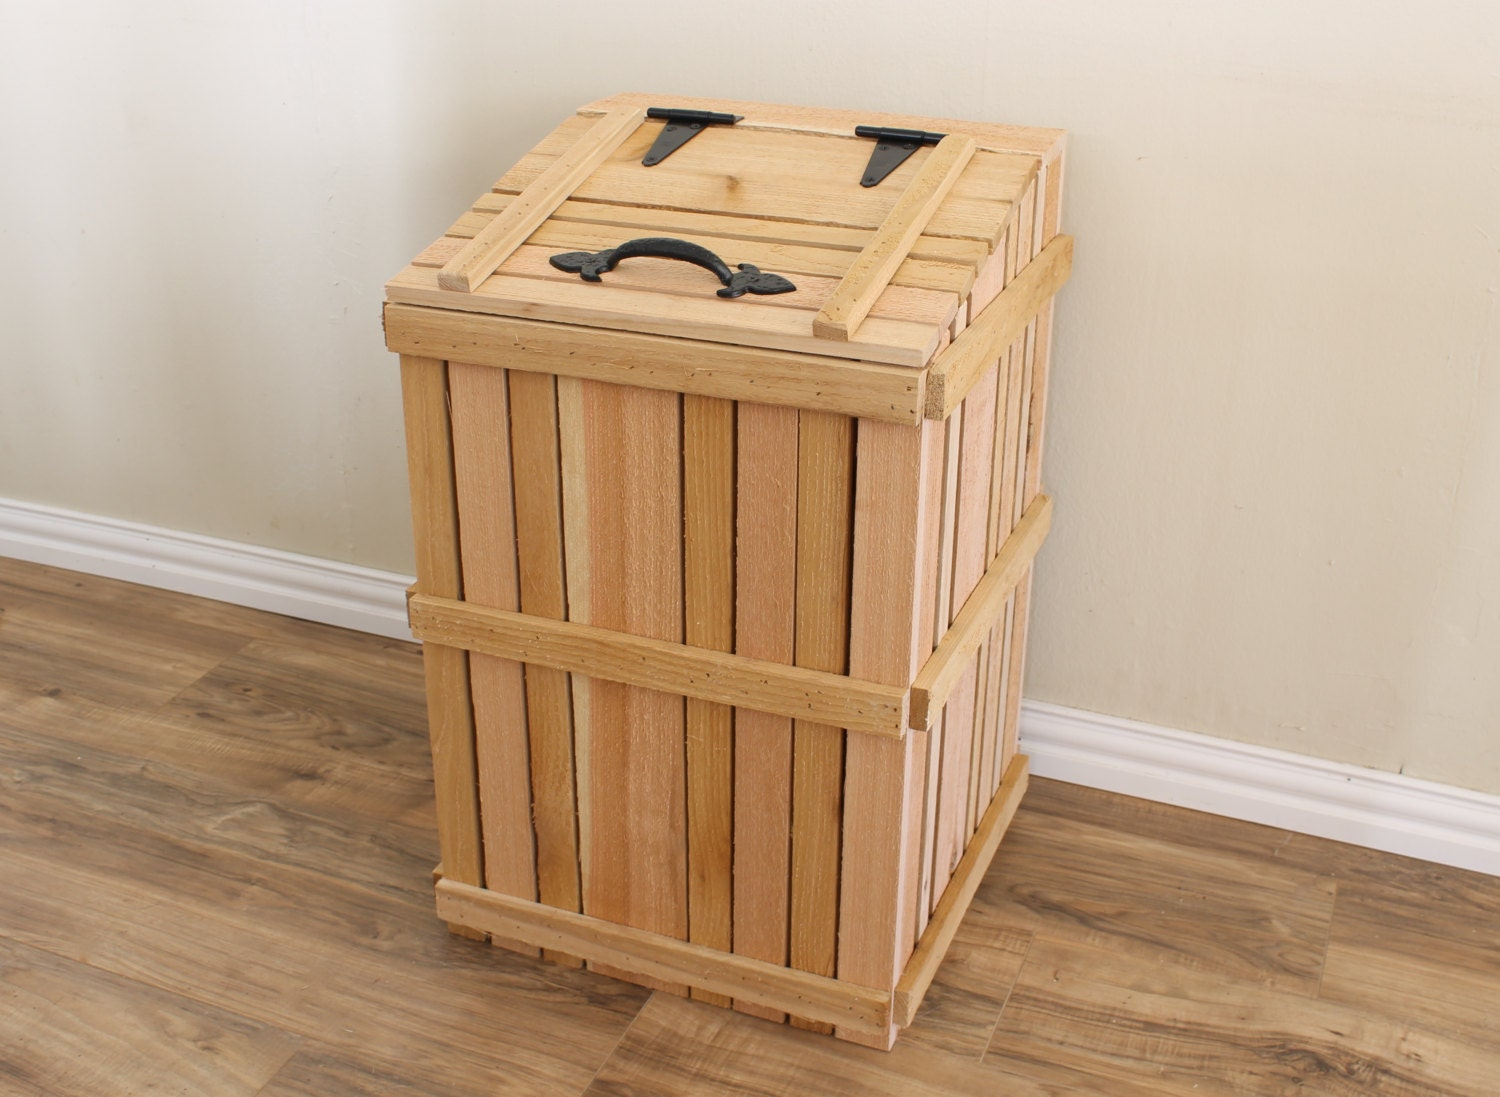 Wood trash can cover kitchen trash can garbage by - Poubelle en bois cuisine ...